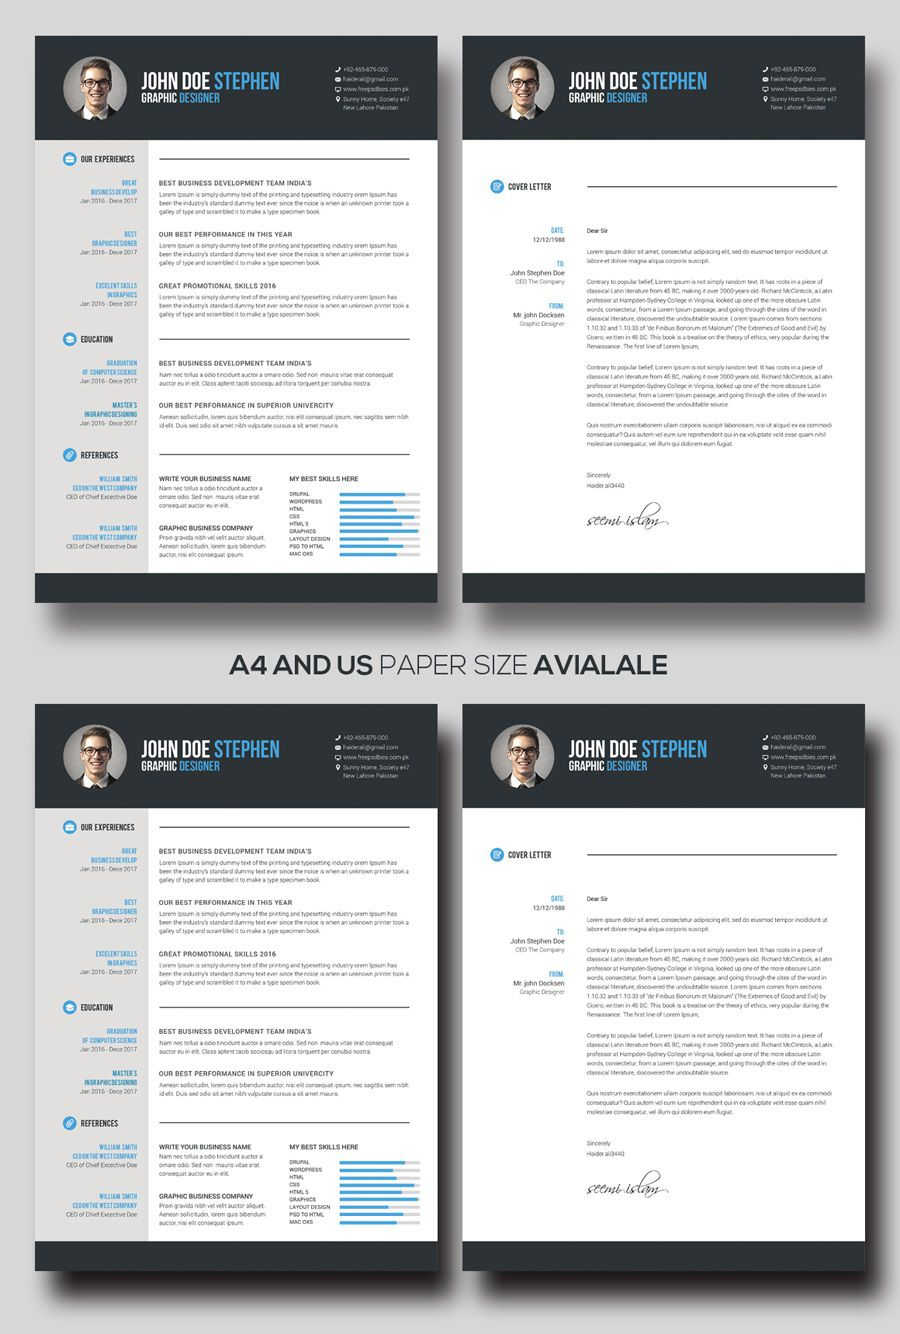 005 Exceptional M Word Template Free Download Picture  Microsoft Office Invoice Letterhead 2003 ResumeFull